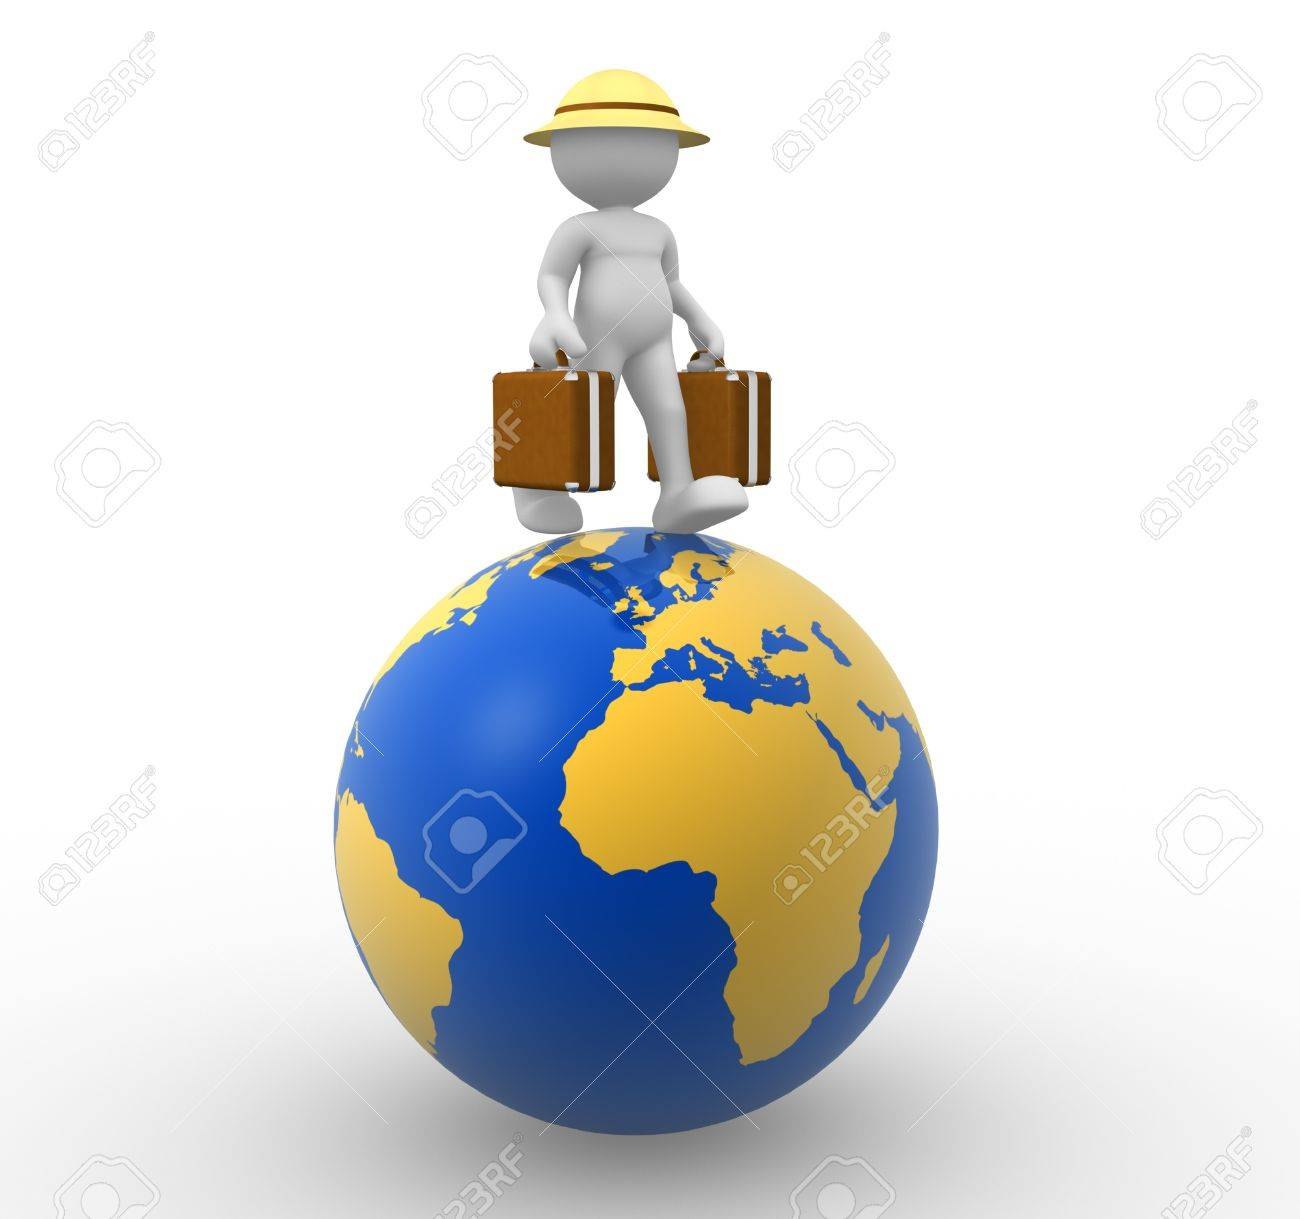 3d people - man, person with a suitcase. World Travel Stock Photo - 17532617